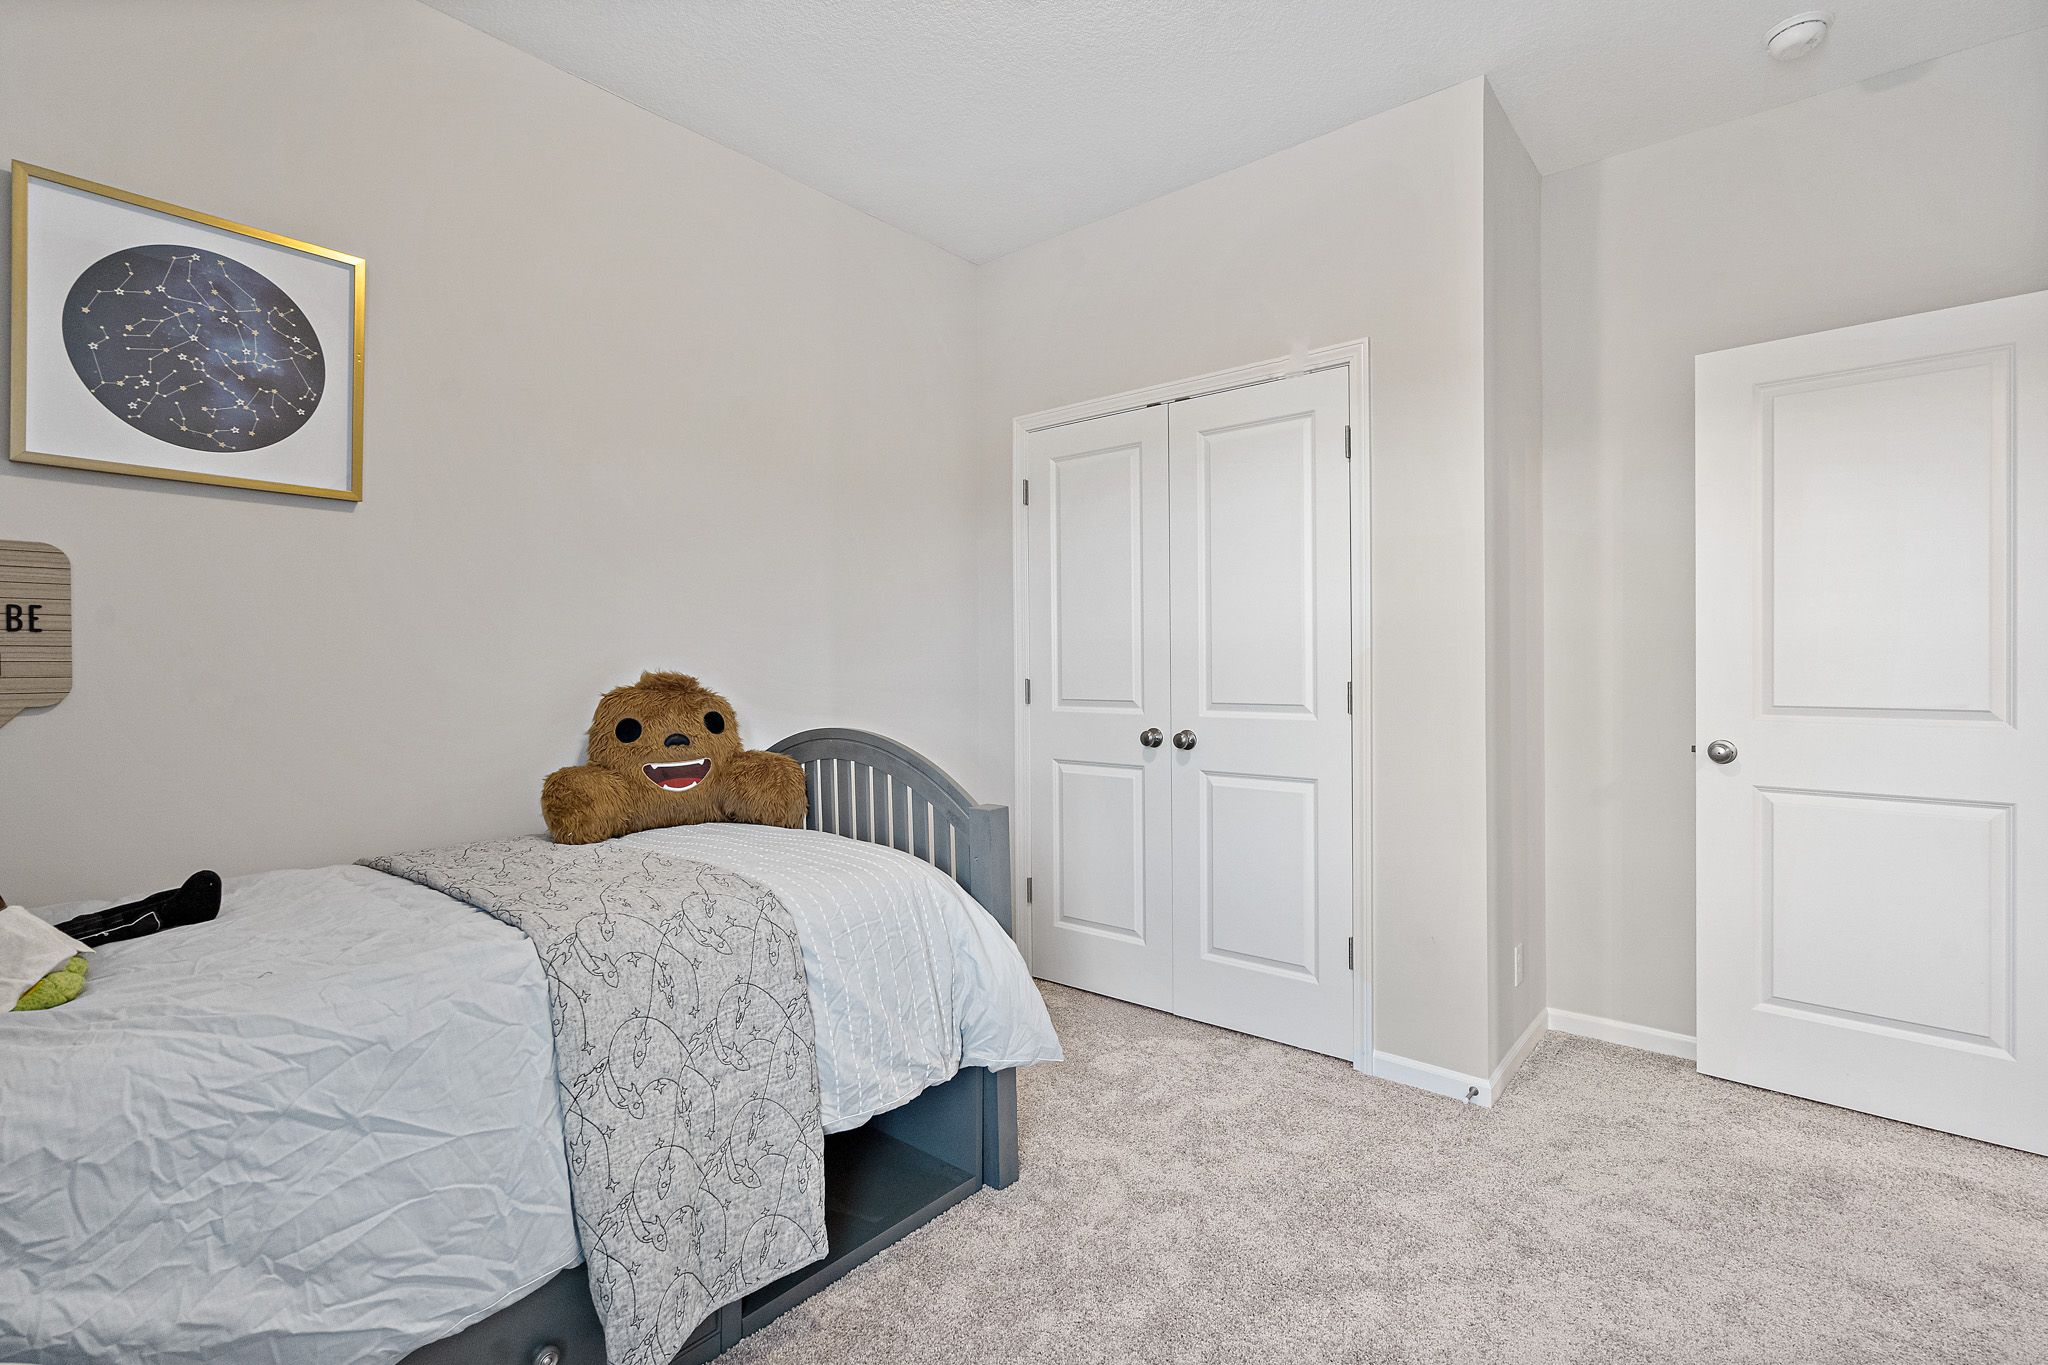 Bedroom featured in the Westport - Care Free By Summit Homes in Kansas City, MO